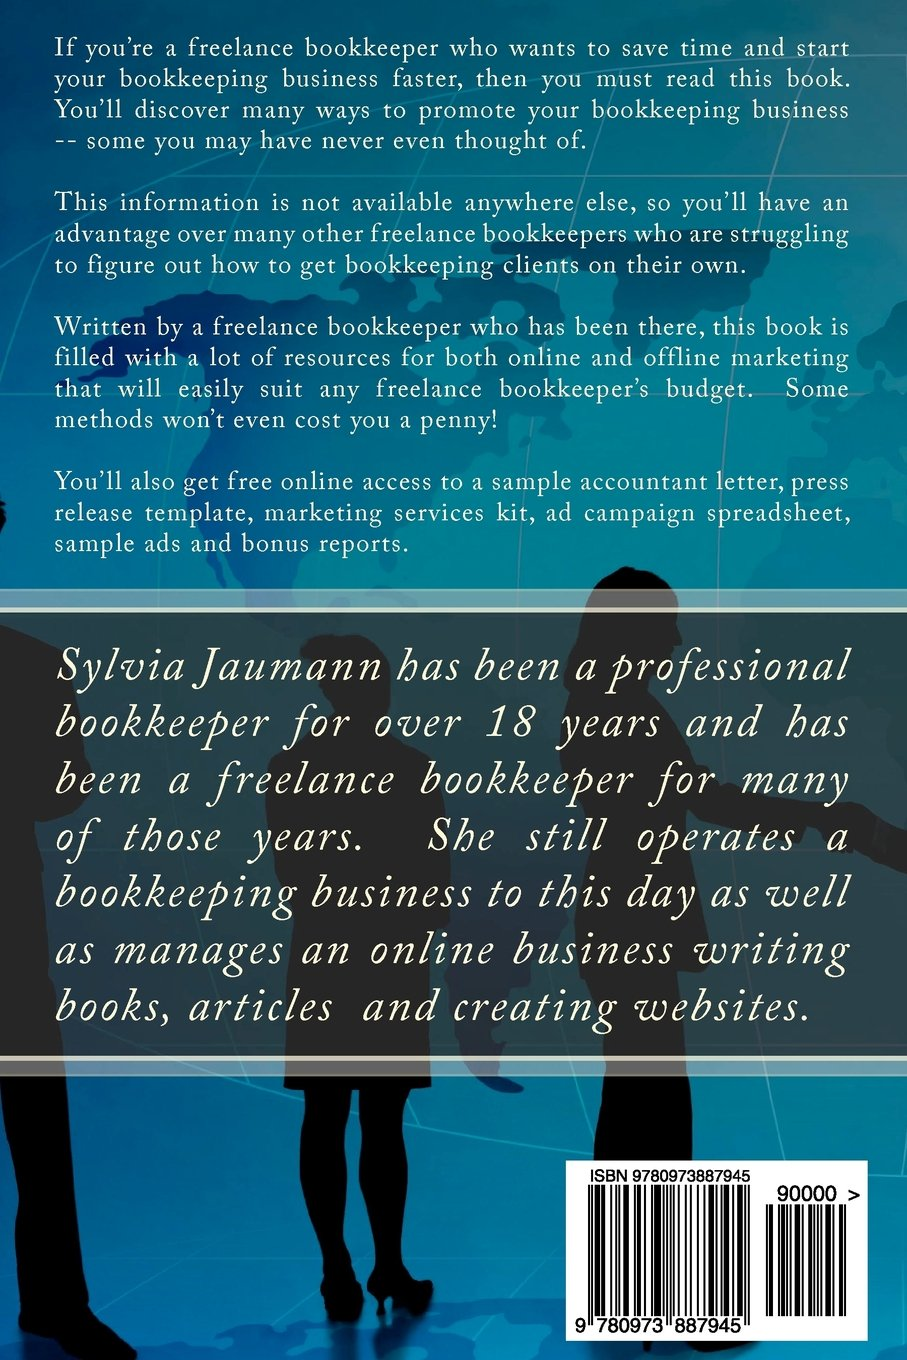 how to get bookkeeping clients quickly the bookkeeping business marketing guidebook amazoncouk sylvia jaumann 9780973887945 books. Resume Example. Resume CV Cover Letter